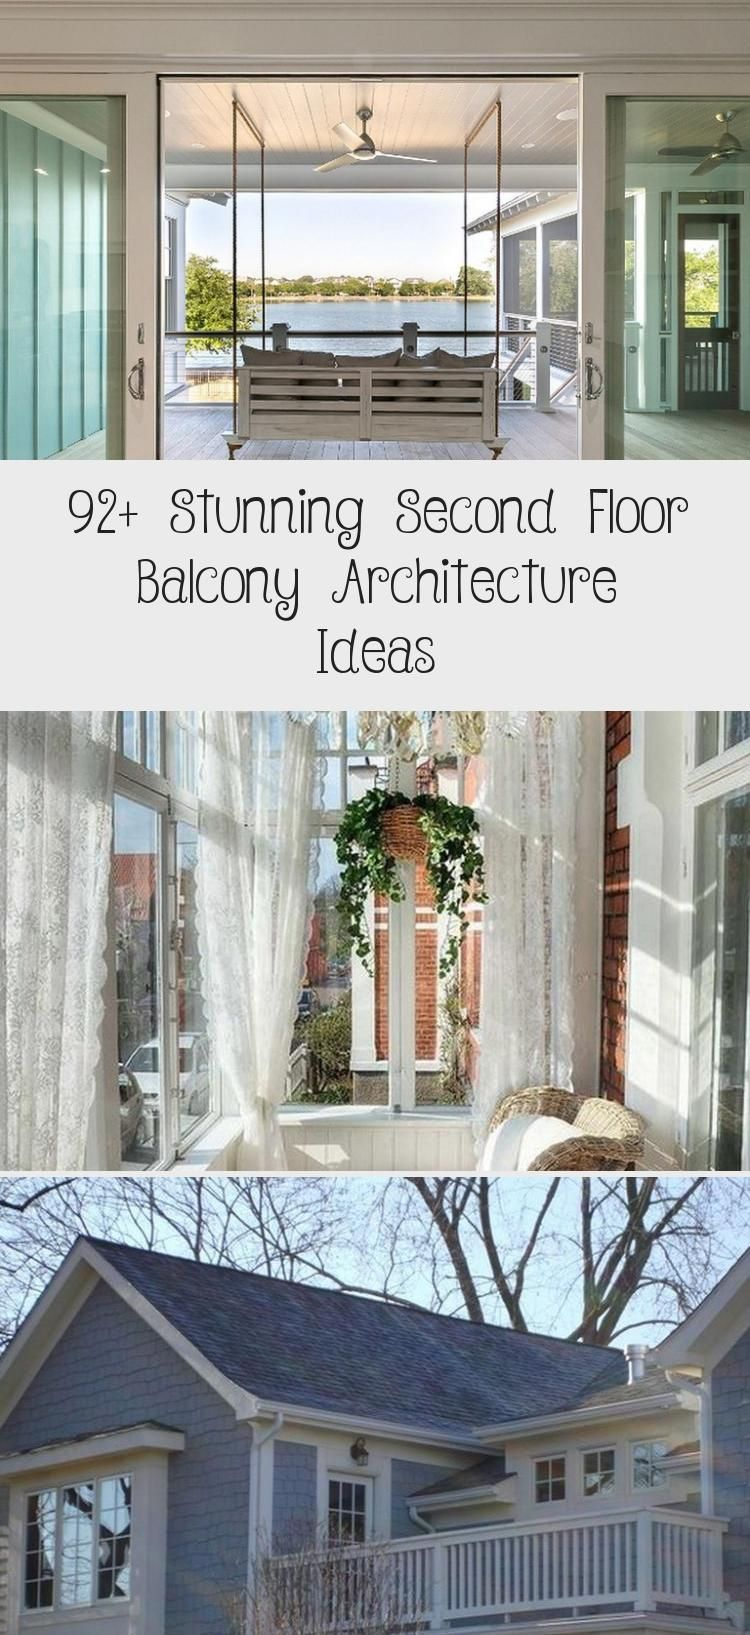 92 Stunning Second Floor Balcony Architecture Ideas In 2020